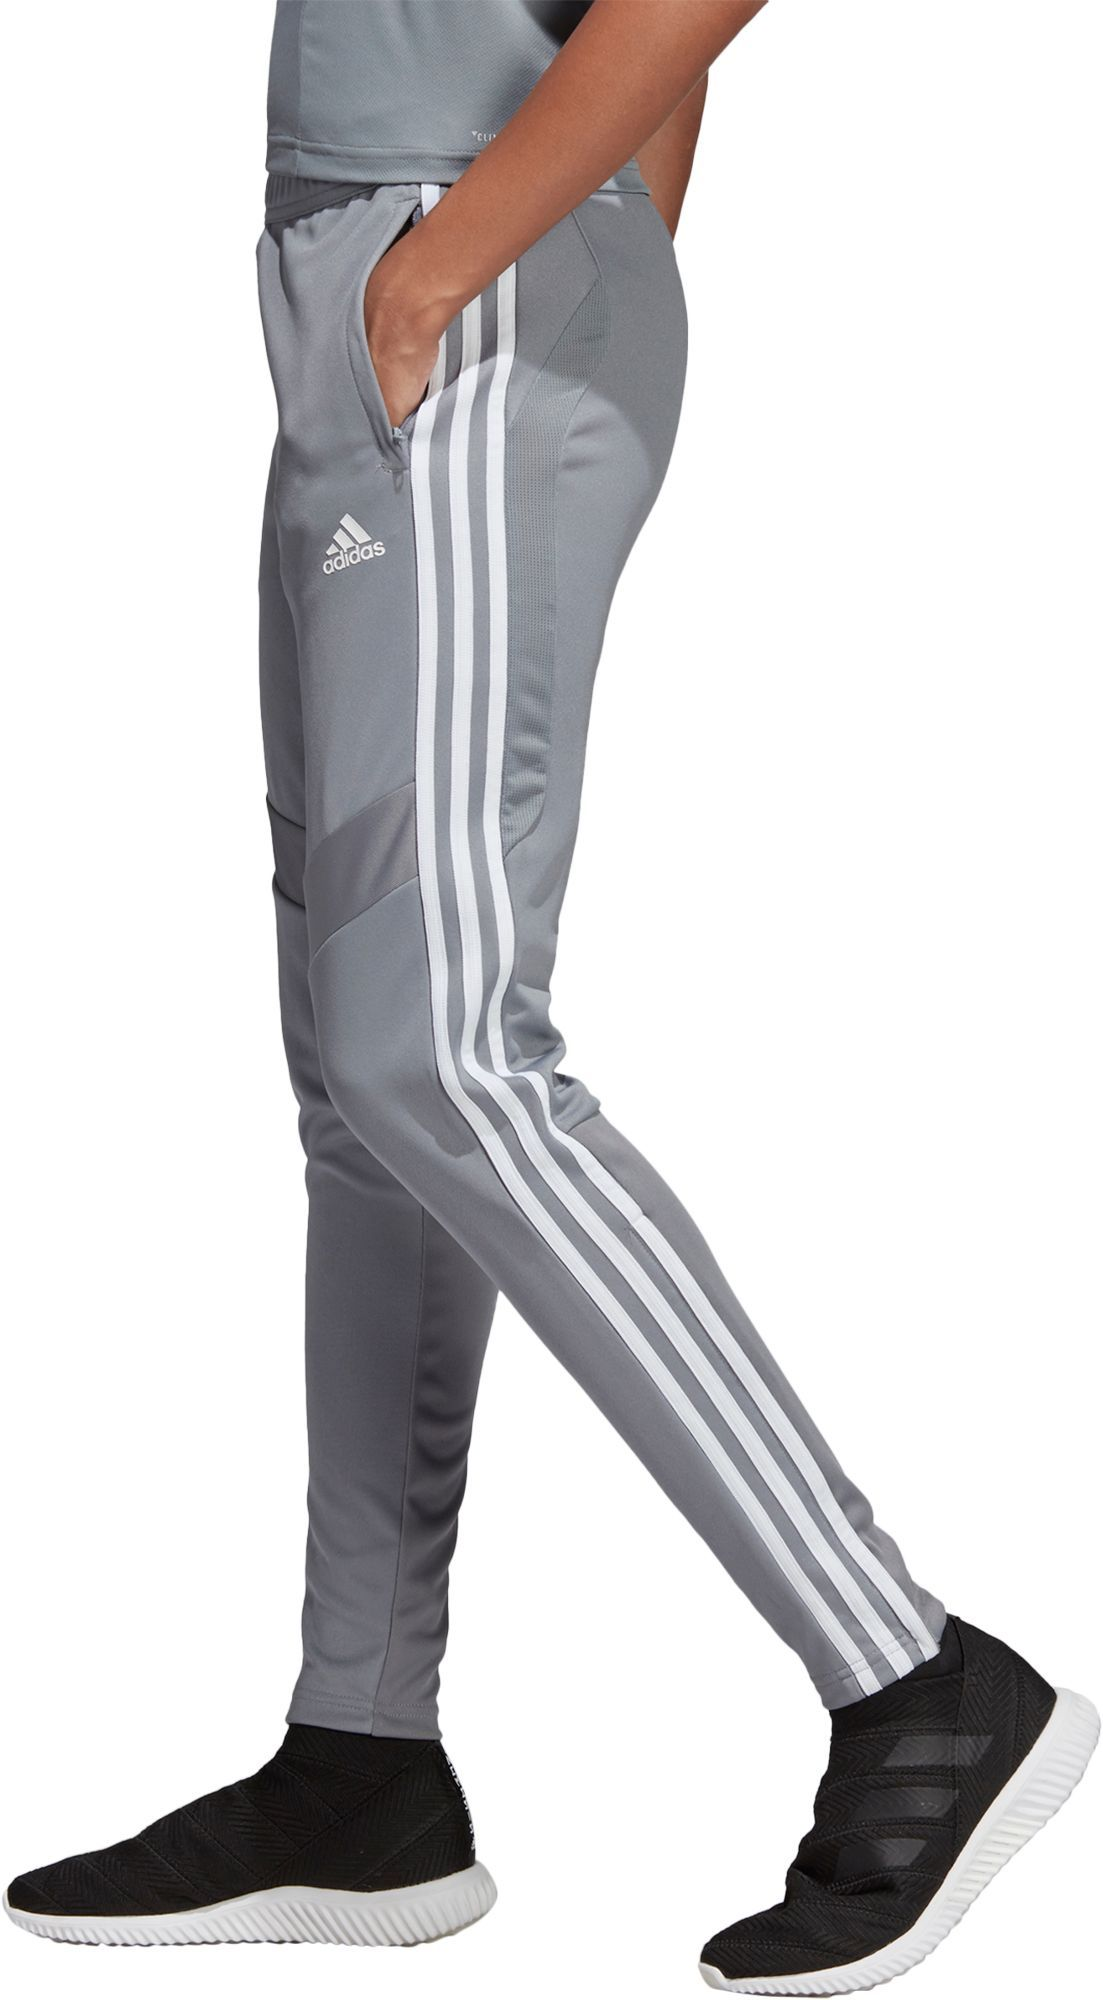 a04d66a167ab1 adidas Women's Tiro 19 Training Pants in 2019 | Products | Adidas ...